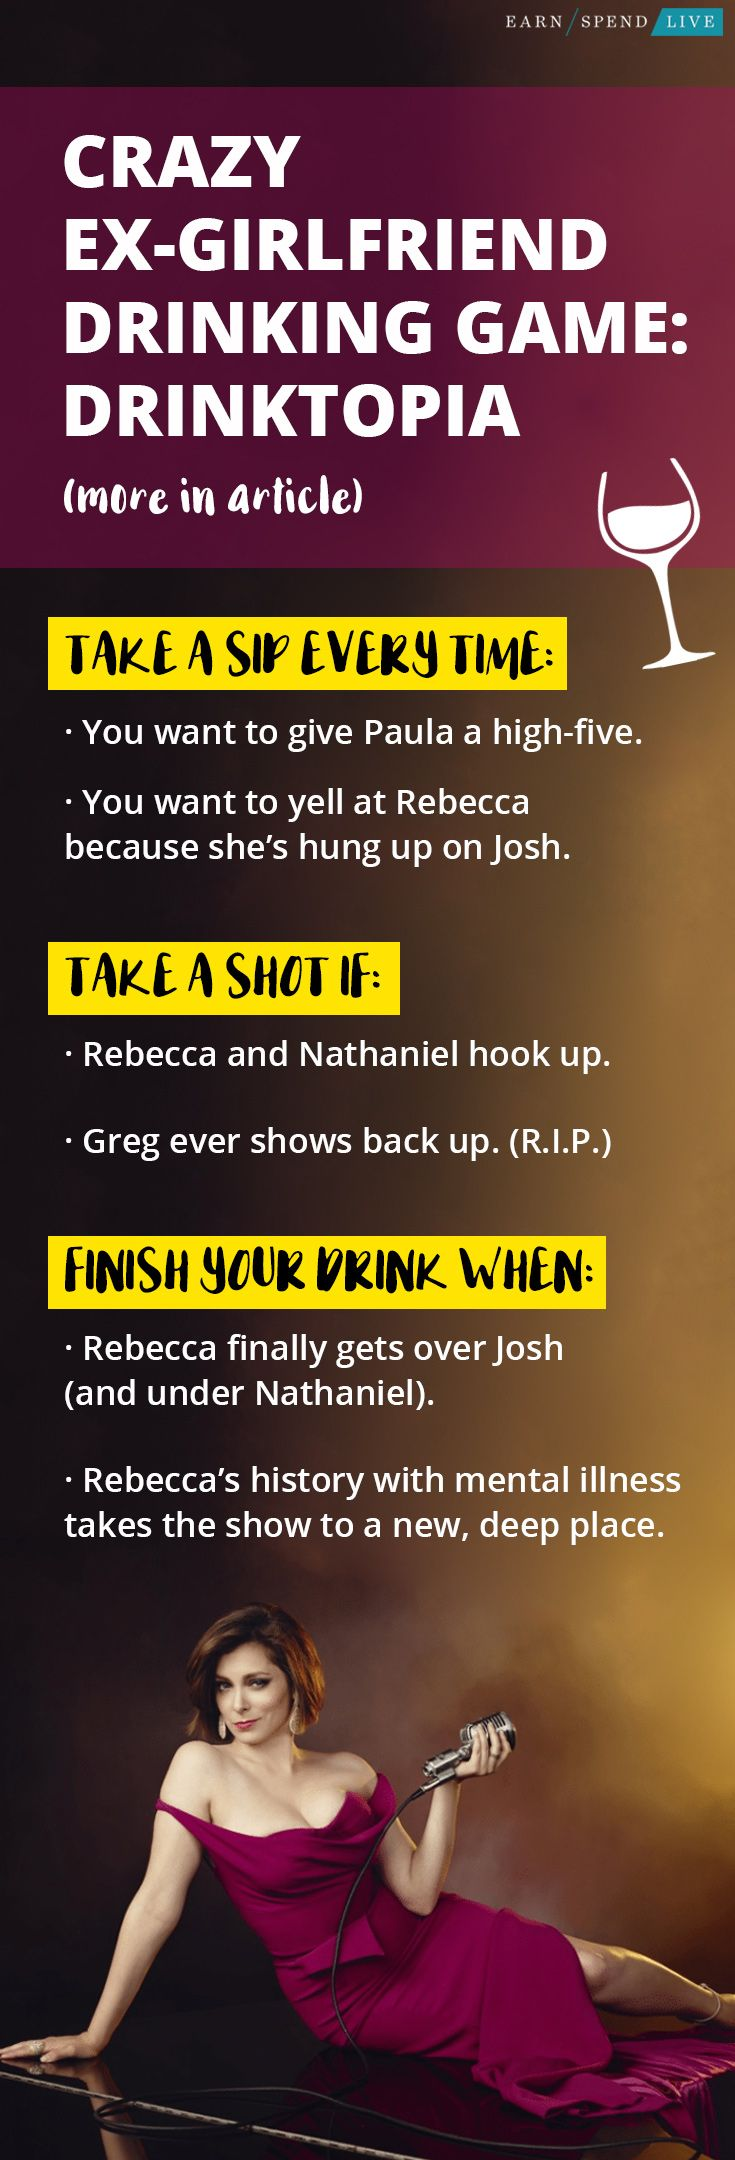 Drinking games hook up